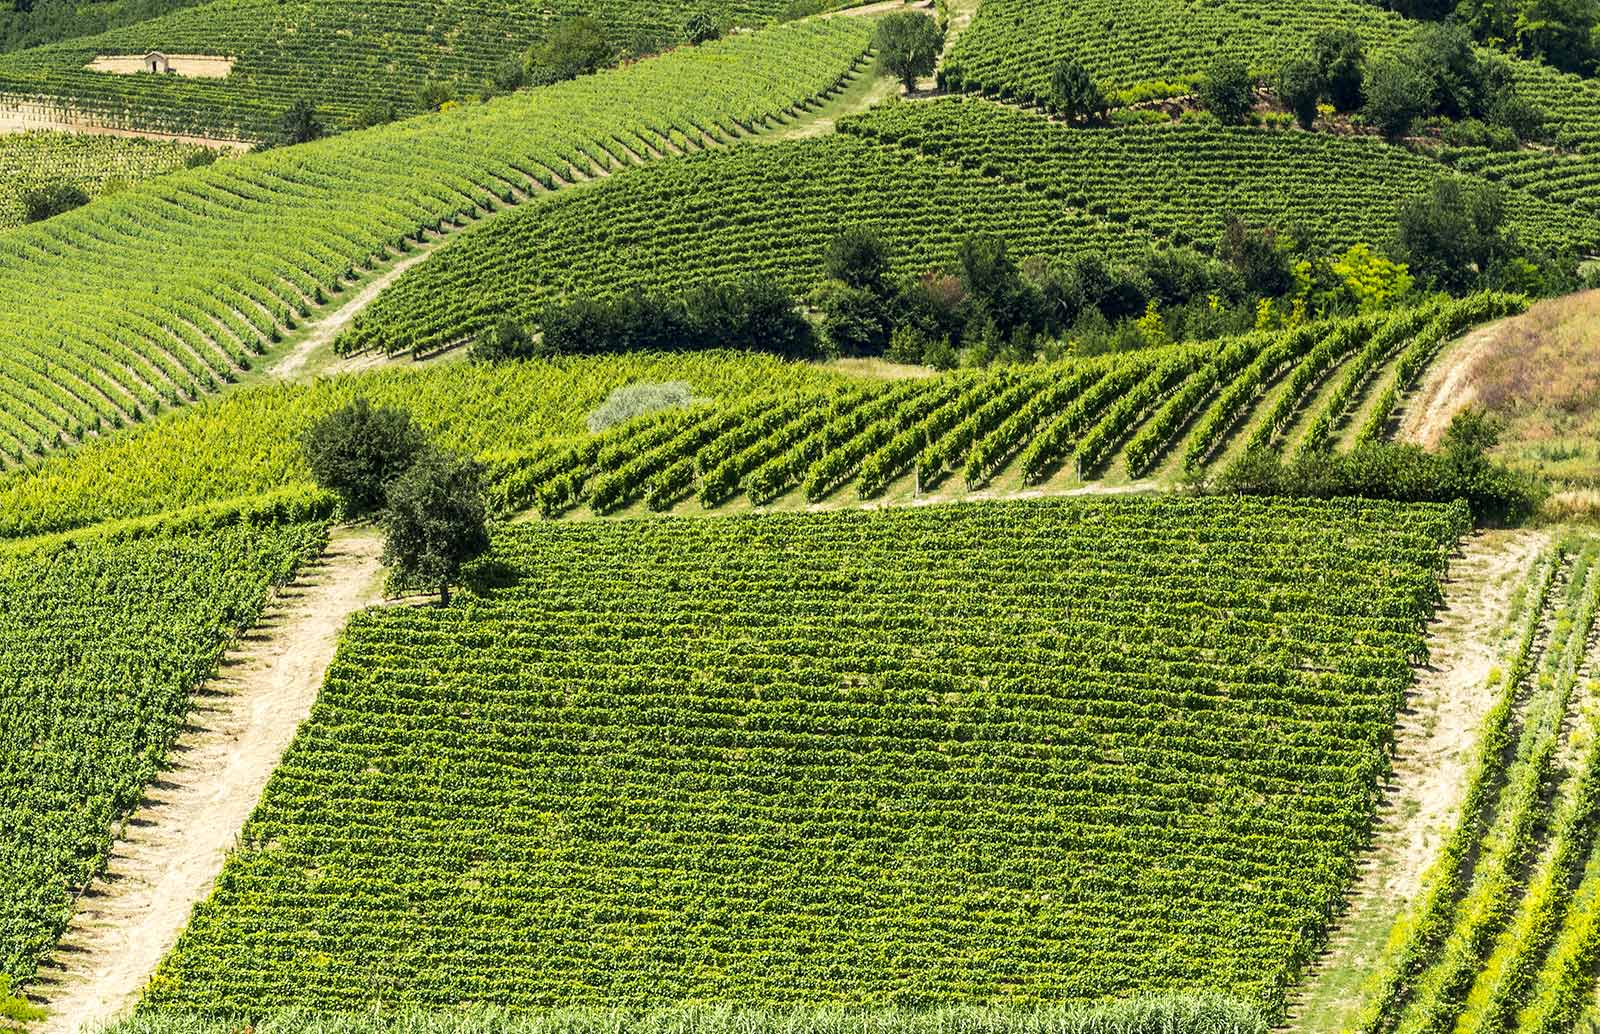 Vineyards in Monferrato.